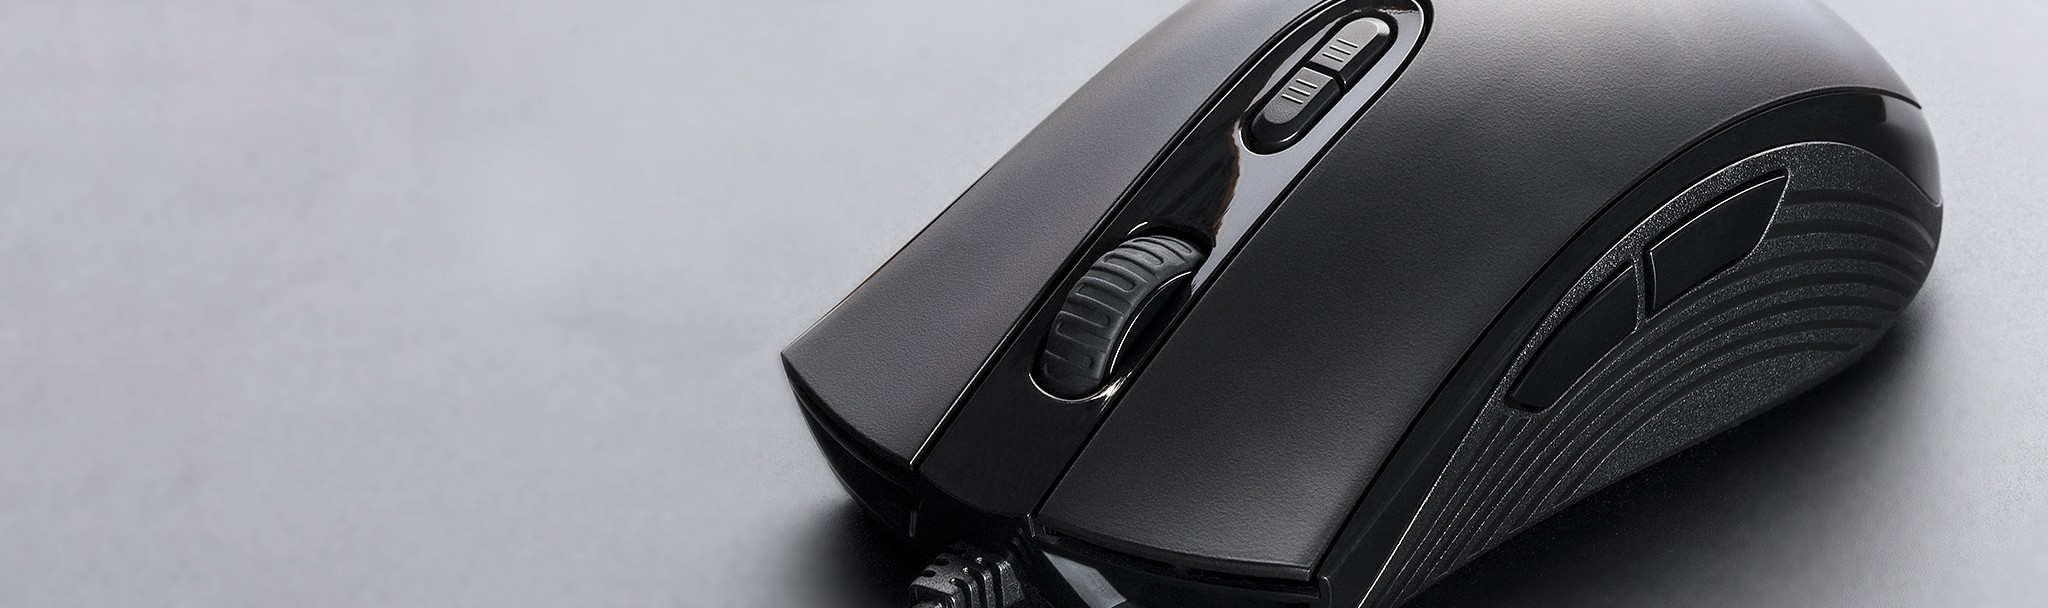 hx-keyfeatures-mouse-pulsefire-core-2-lg